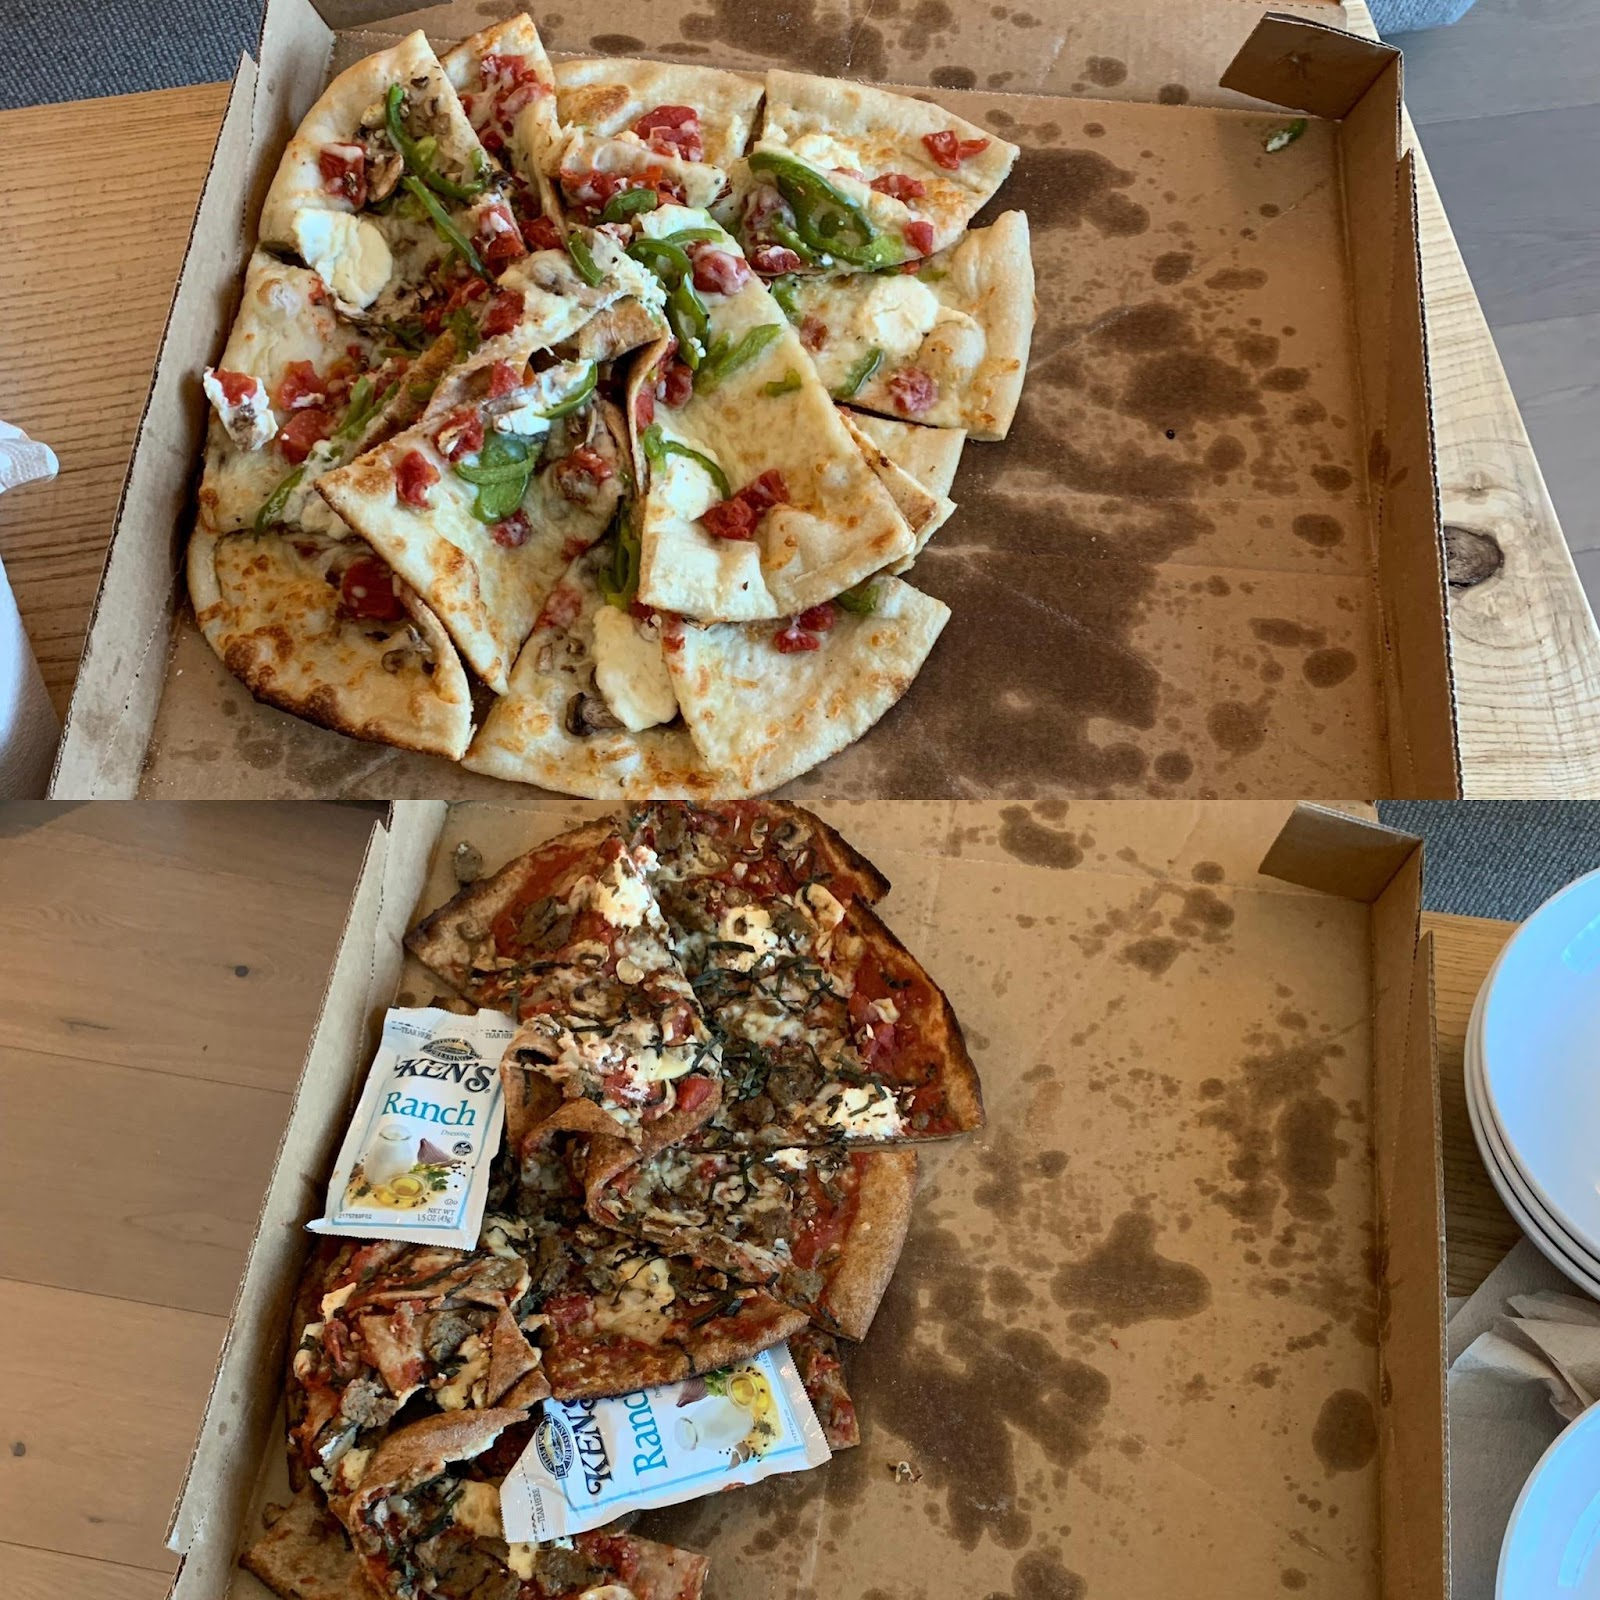 messy pizza arriving in poor delivery condition